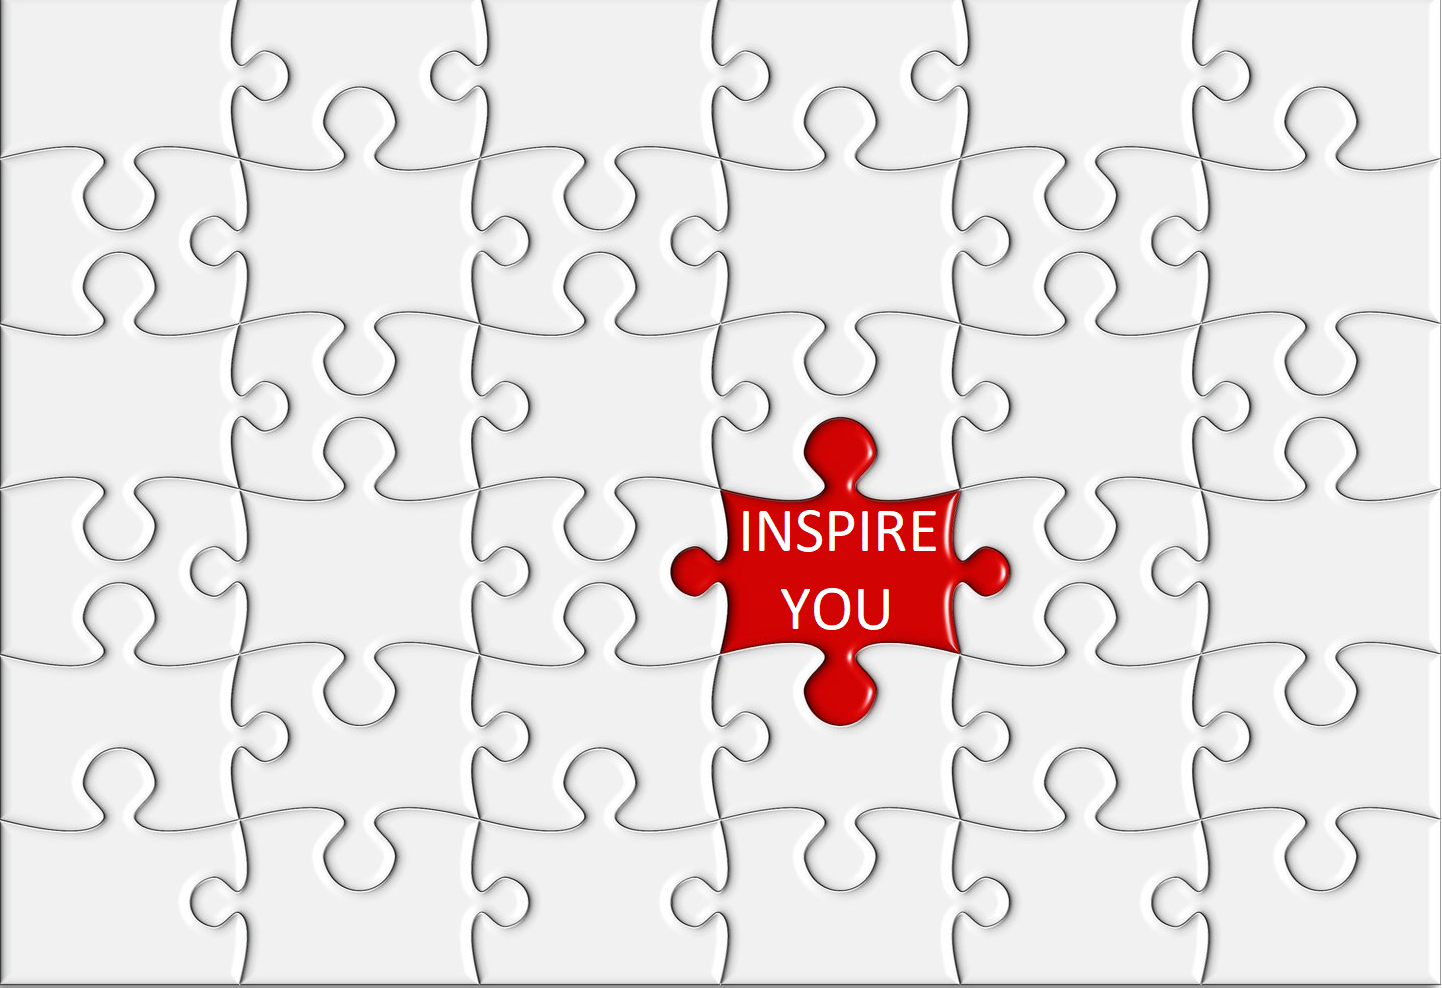 Inspire You can provide the missing piece of the jigsaw.